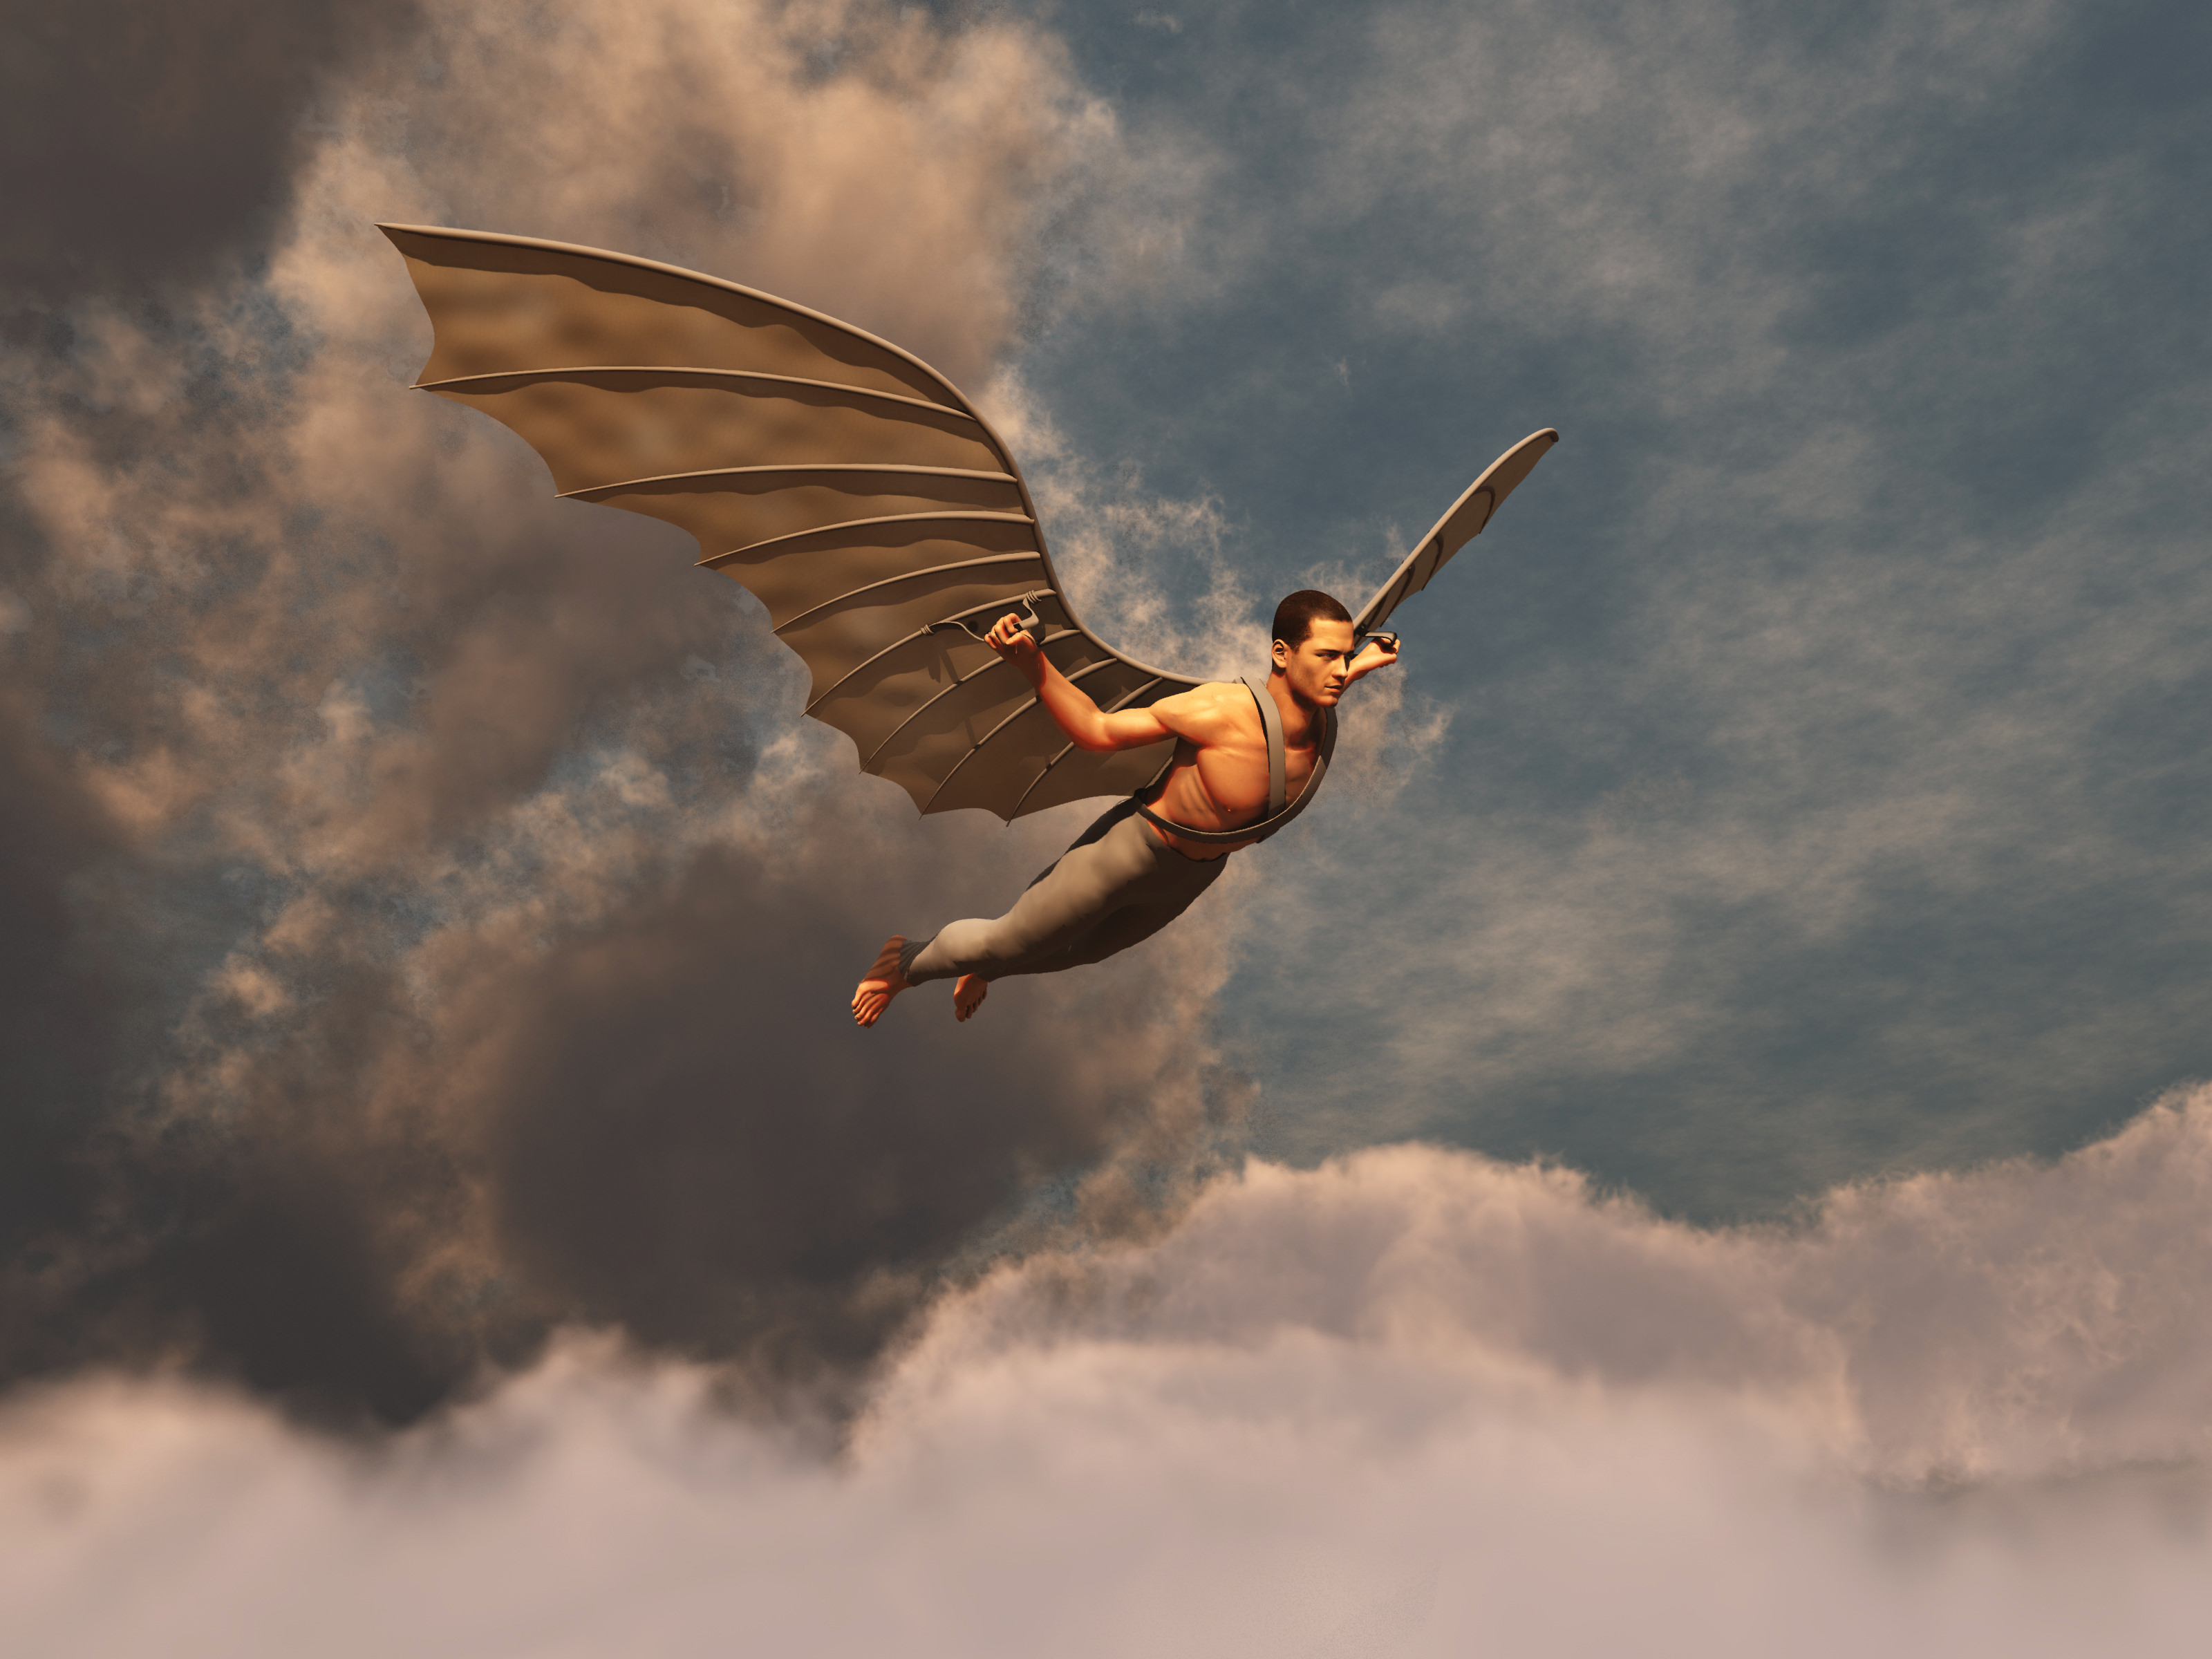 legend of the fall of icarus